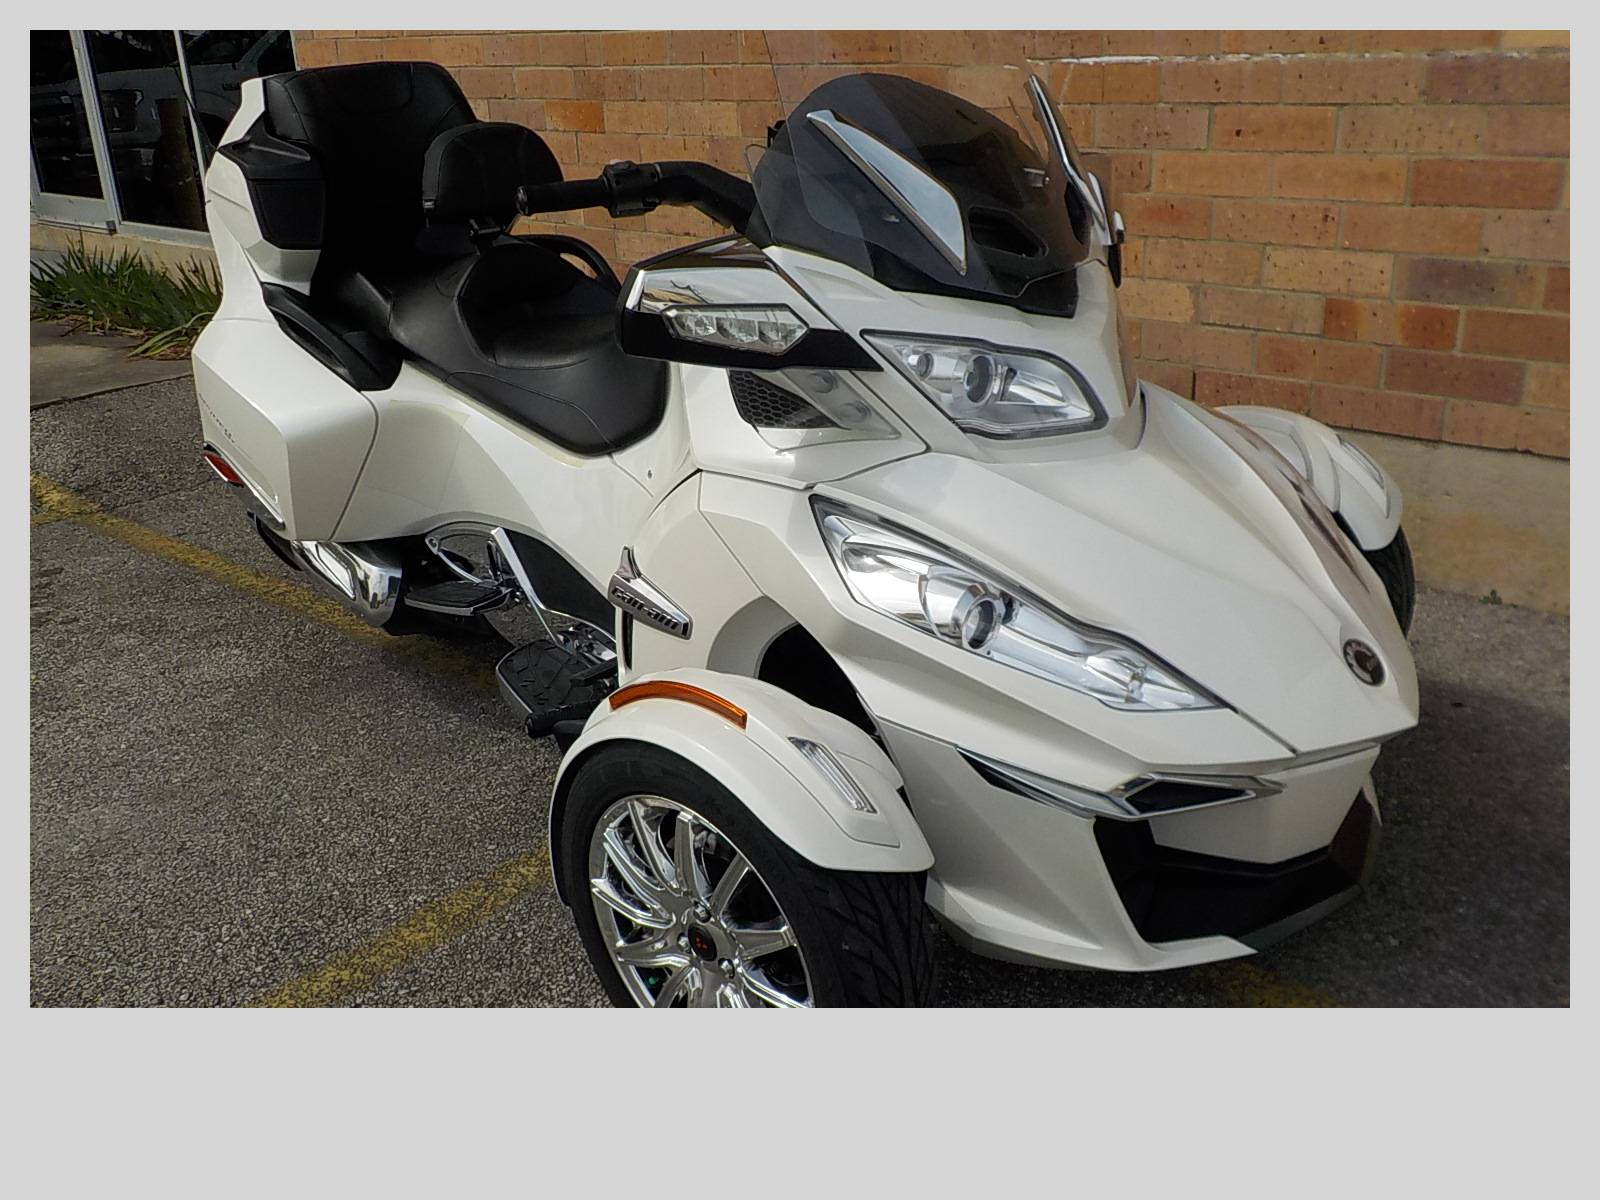 2016 Can-Am Spyder RT Limited in San Antonio, Texas - Photo 3